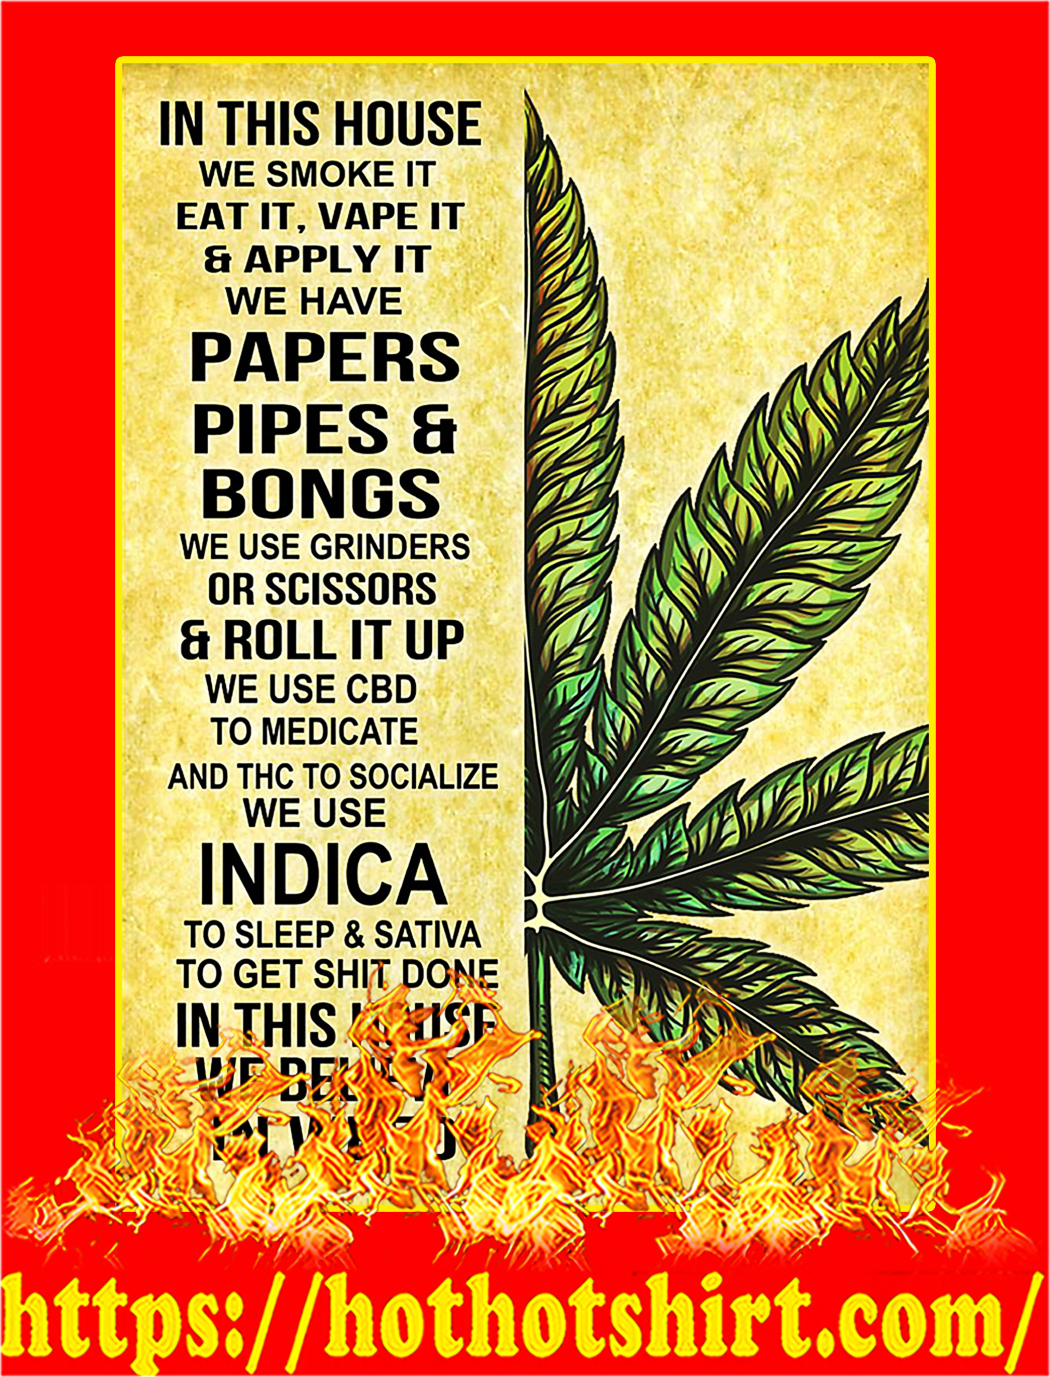 Weed in this house we smoke it eat it poster - A4